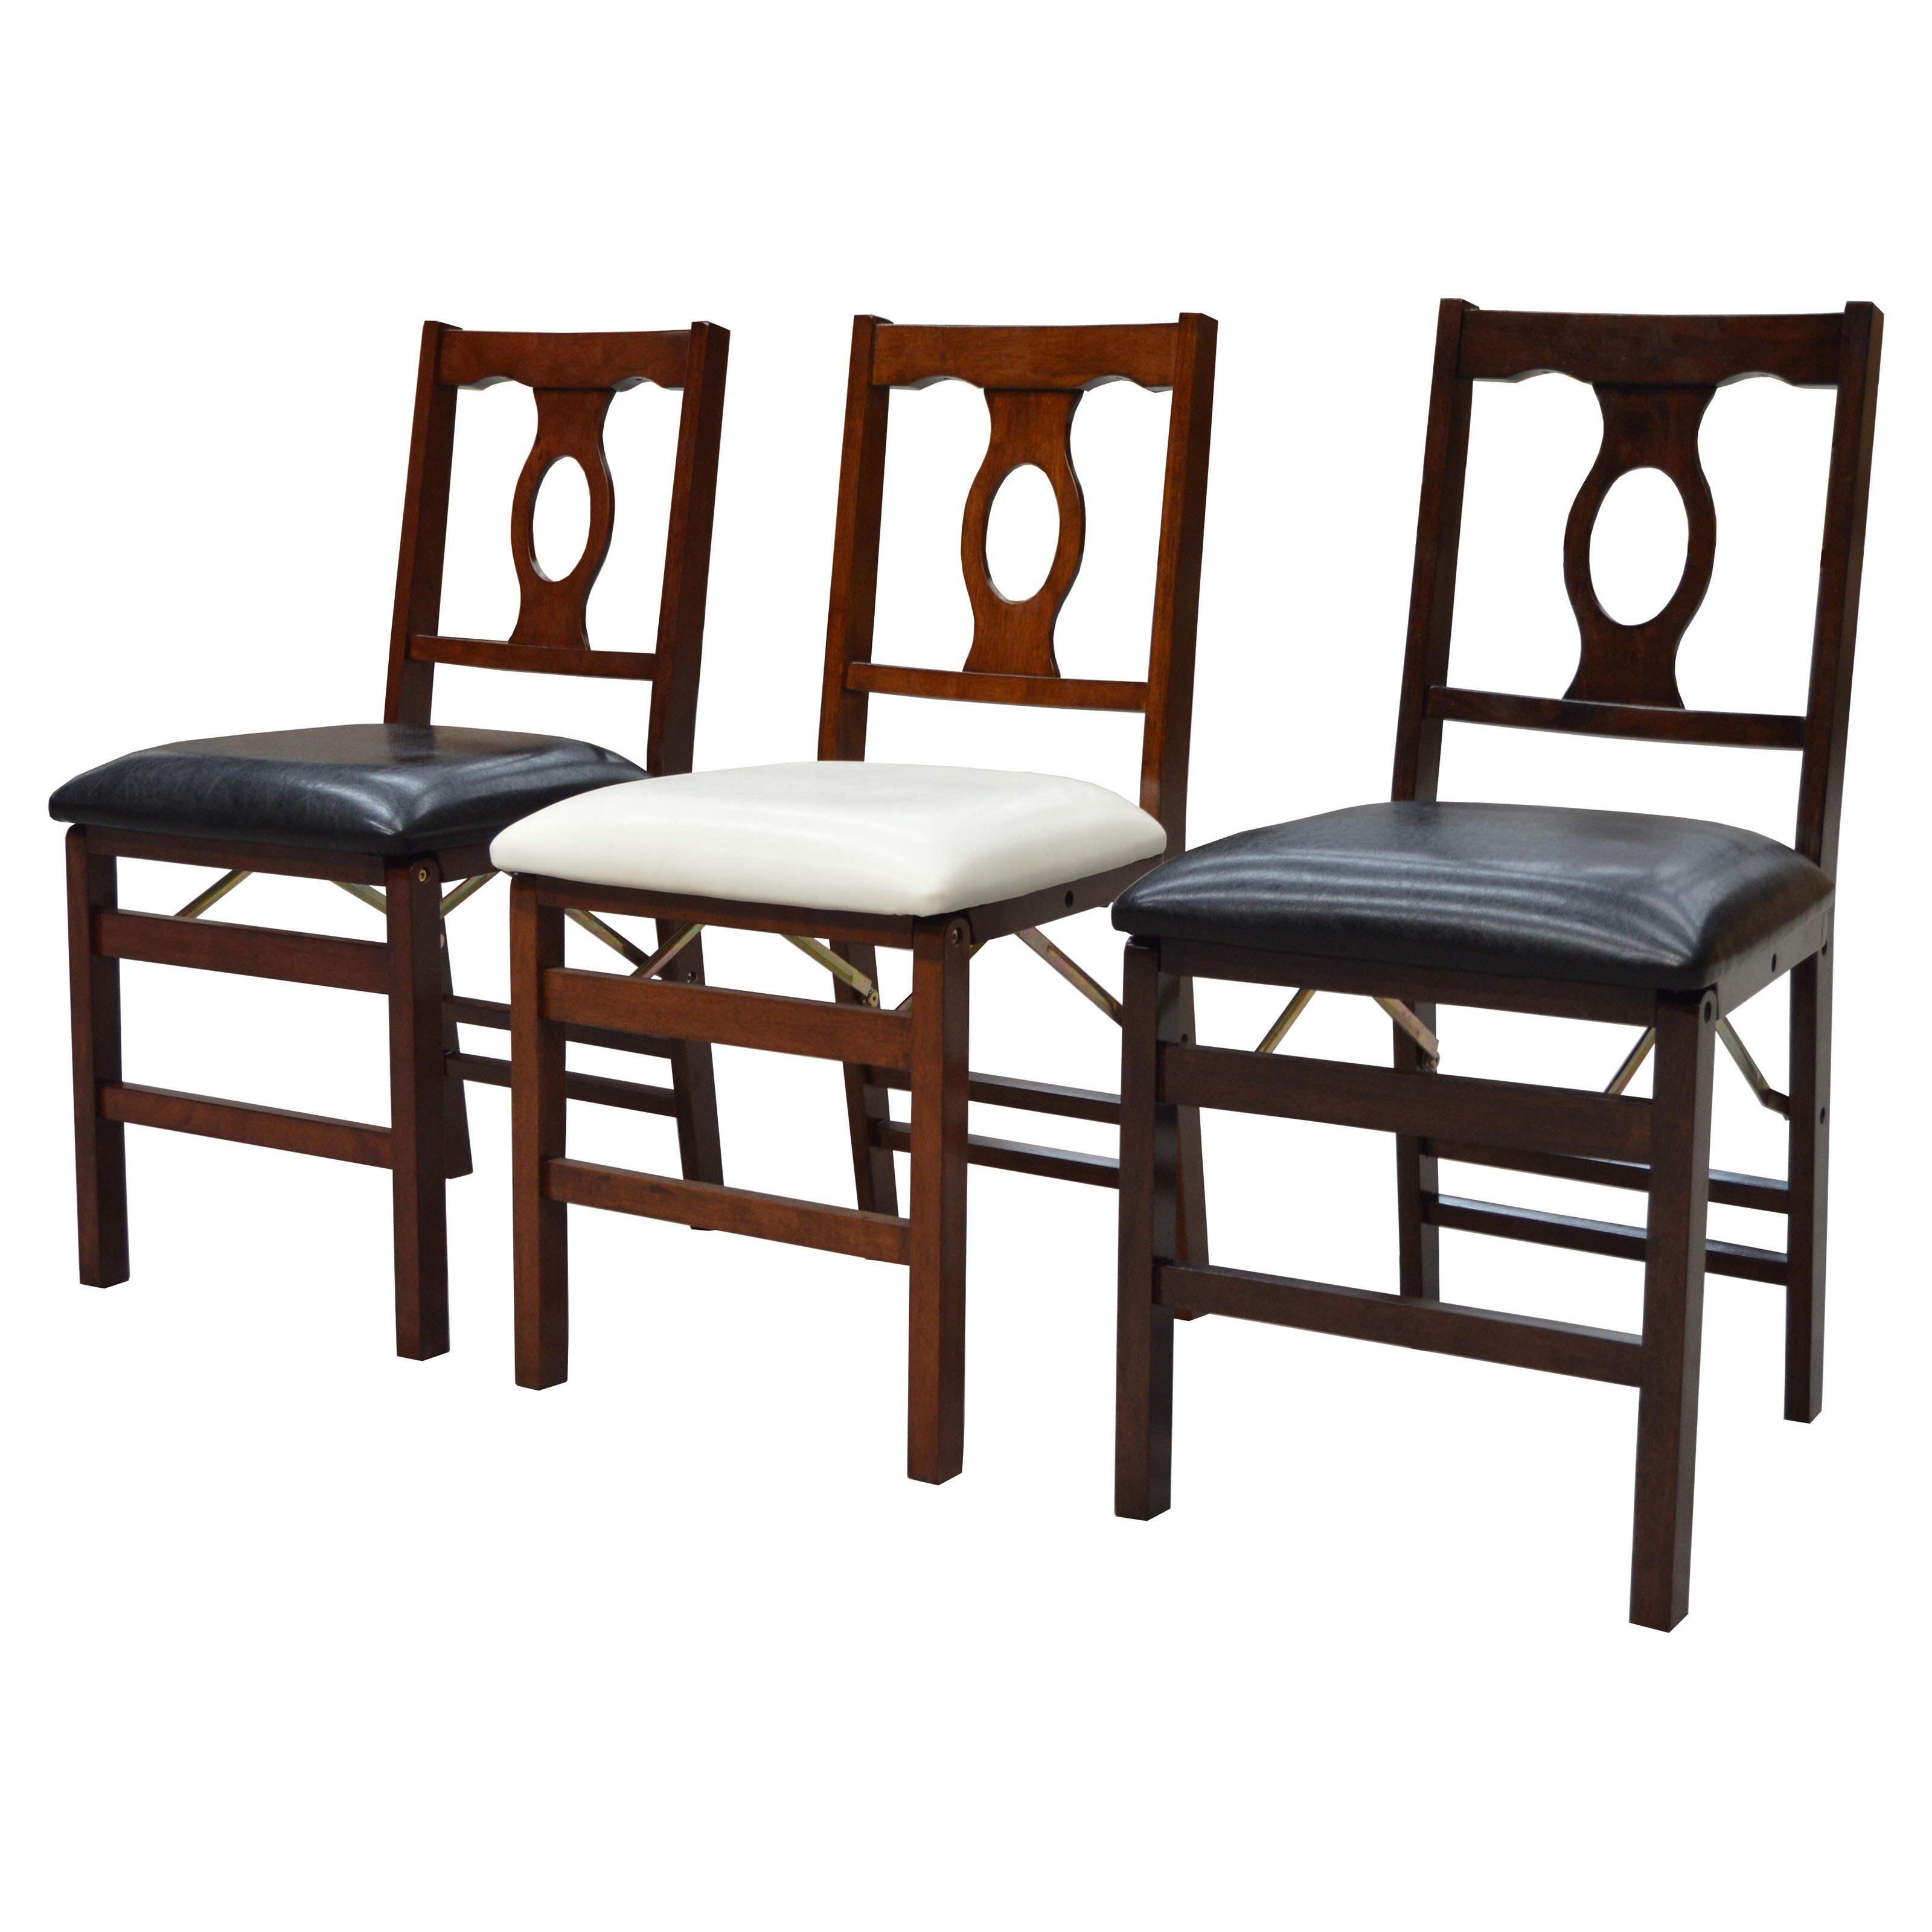 boraam napoleon folding chair set of 2 kitchen dining room chairs at hayneedle. Black Bedroom Furniture Sets. Home Design Ideas